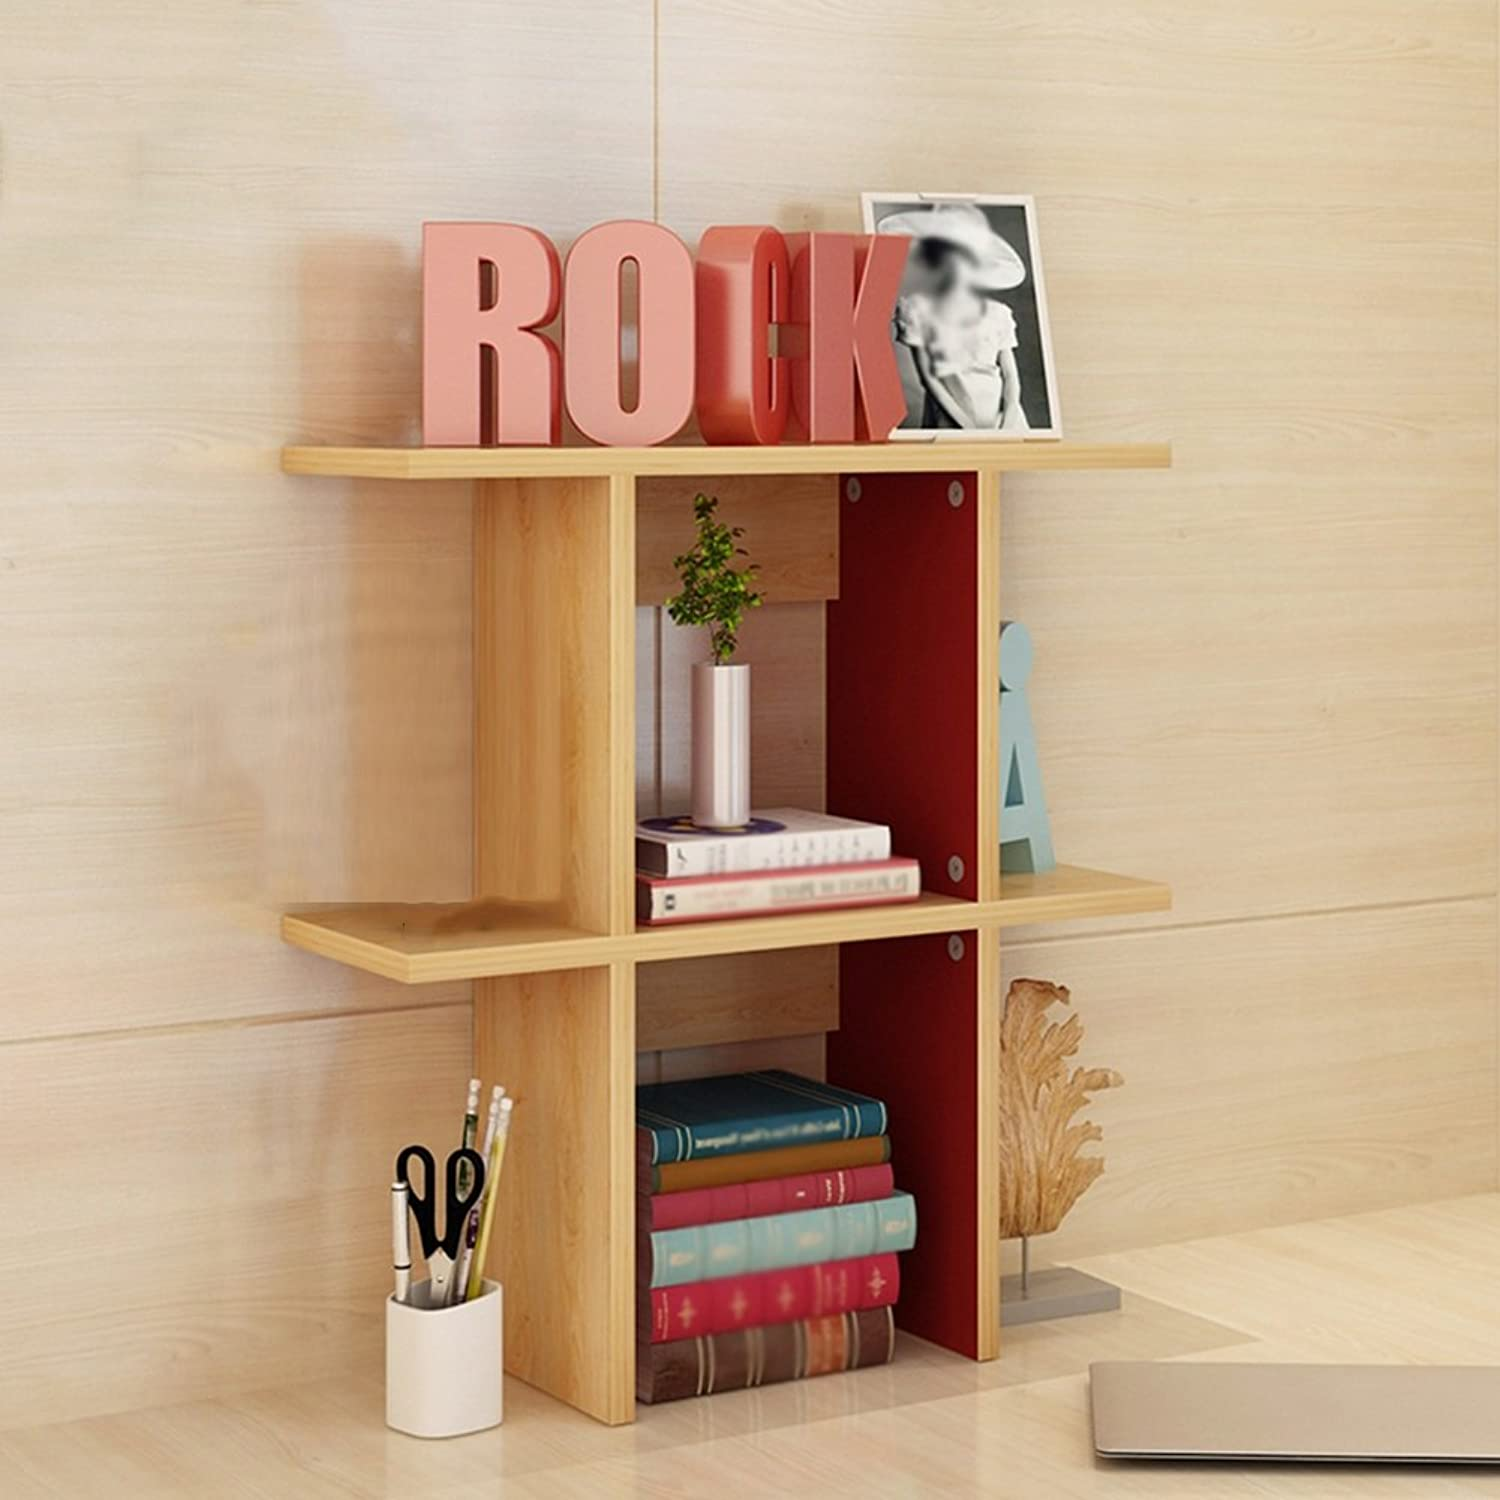 QIANGDA Bookshelf Bookrack Desktop Storage Rack Commodity Shelf Unit Room Divider Shelf, 3 Sizes Optional (Size   60 x 20 x 63cm)